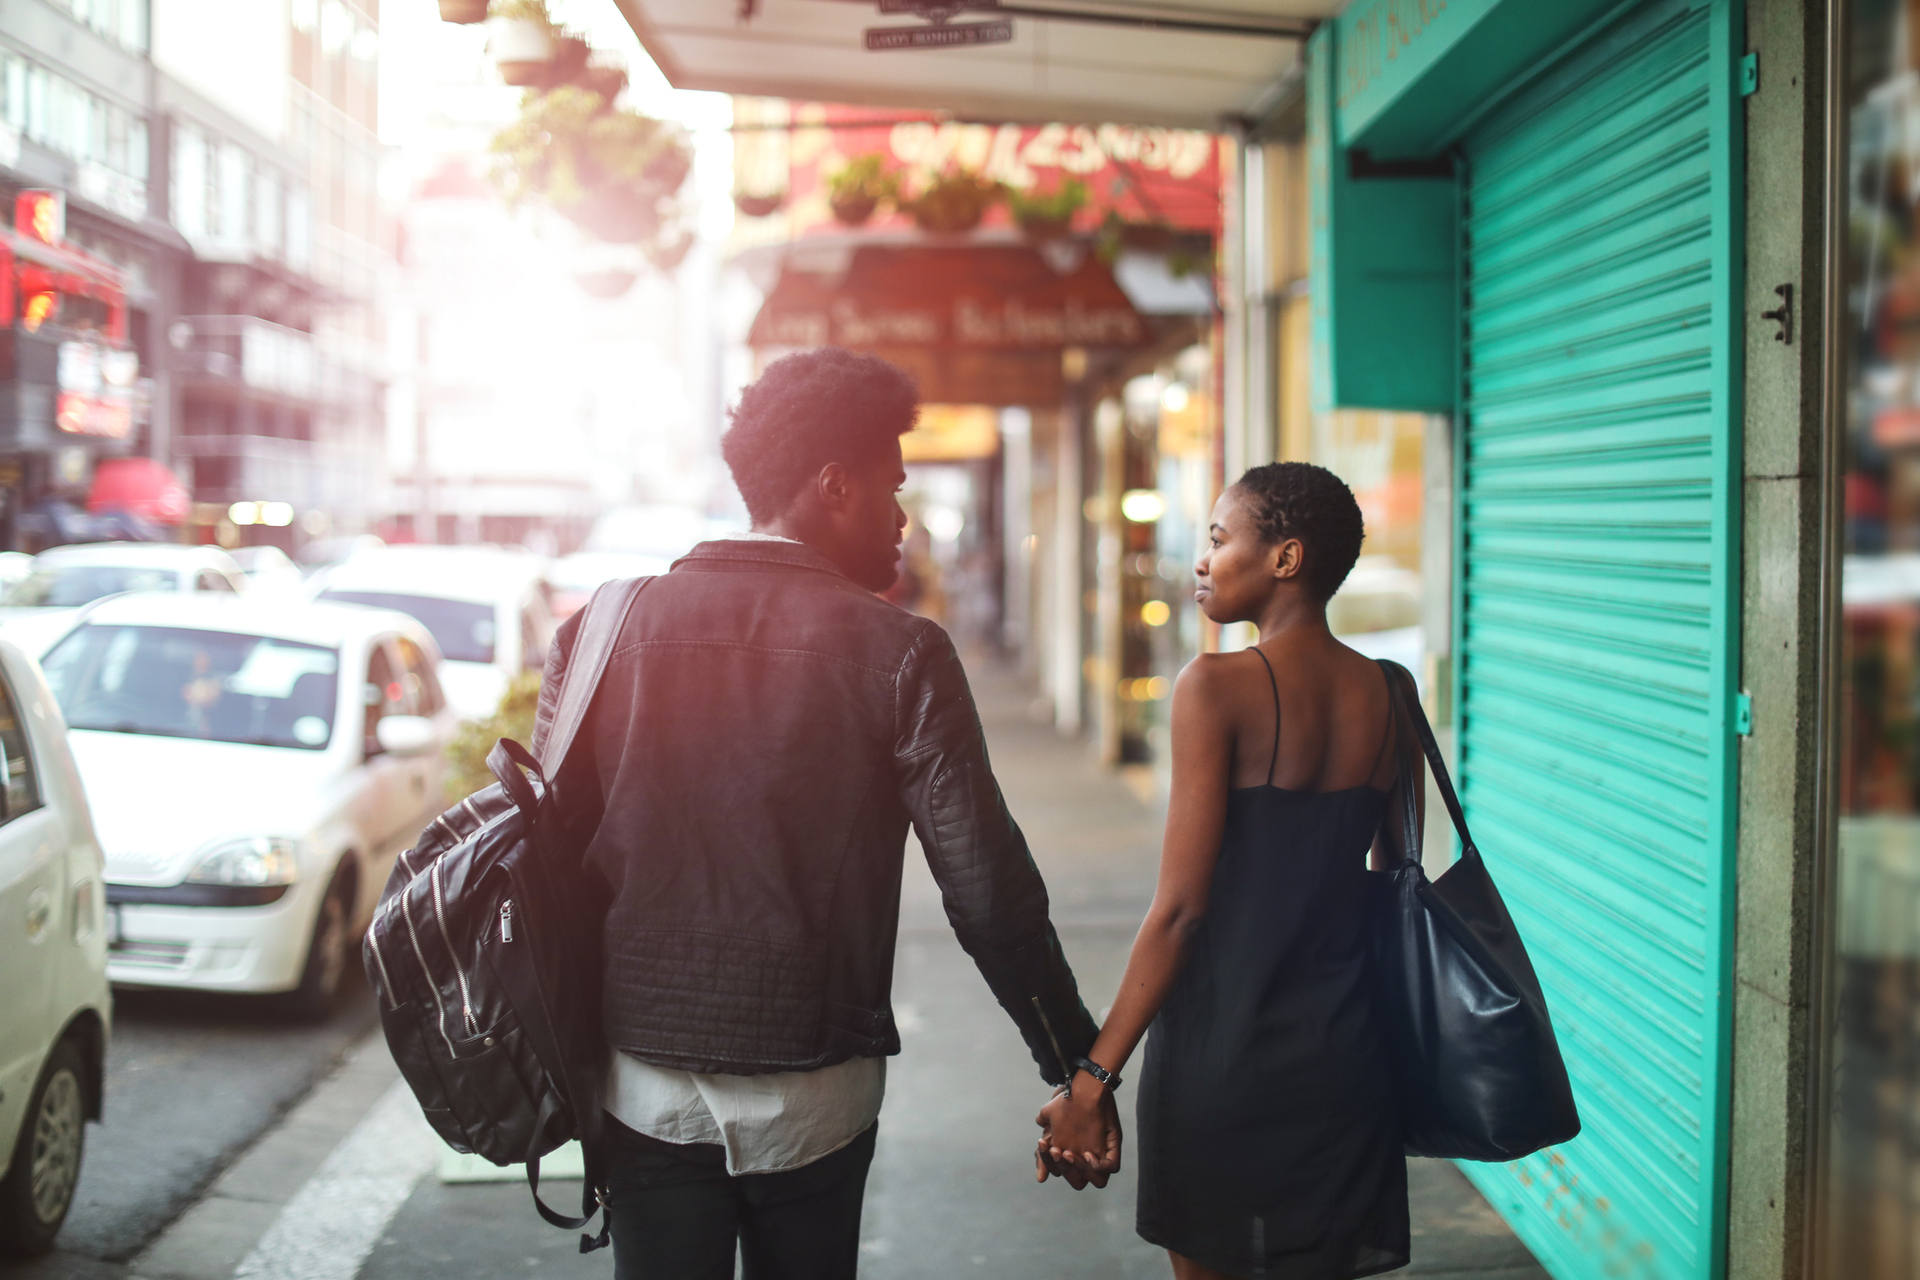 When you're dating but not exclusive, what are the relationship rules?